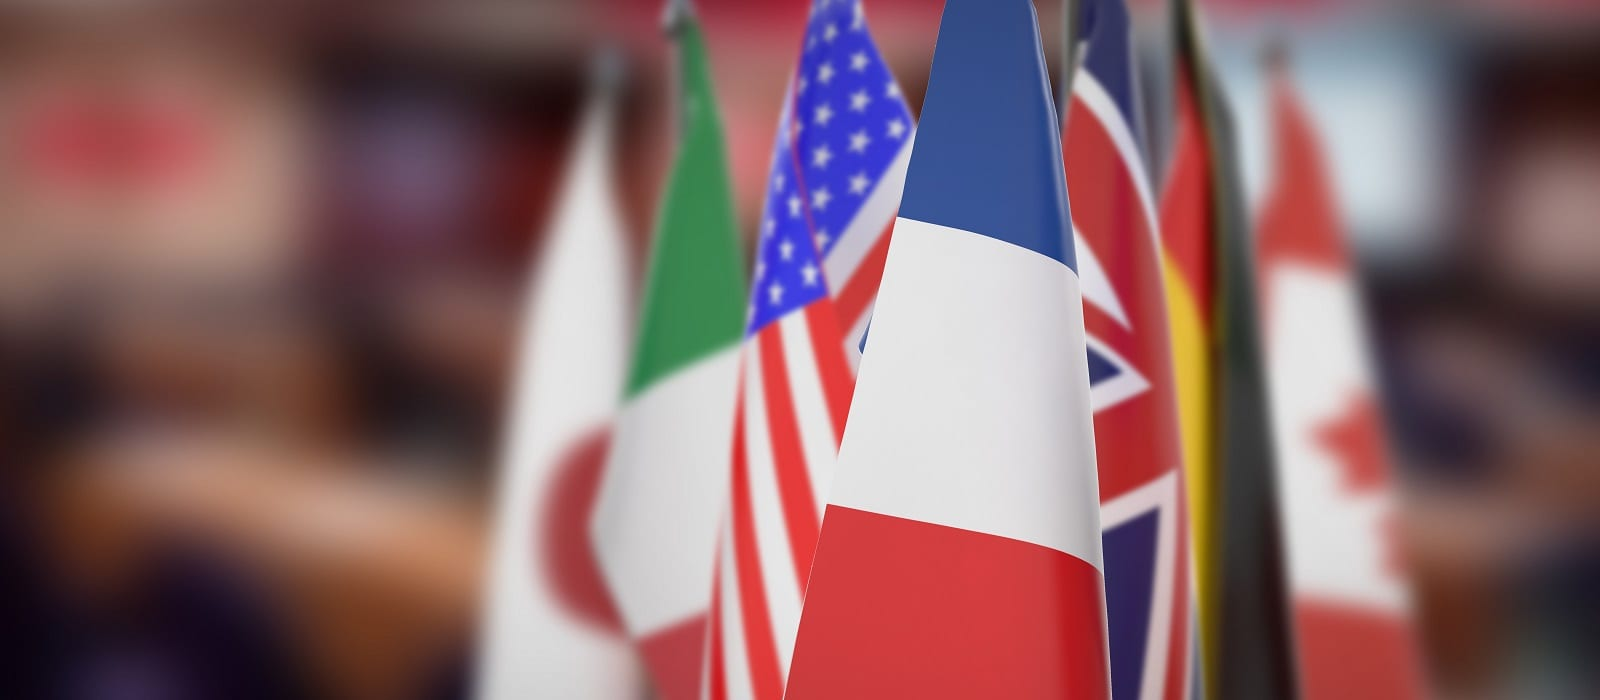 Flags of G7 members isolated with blur